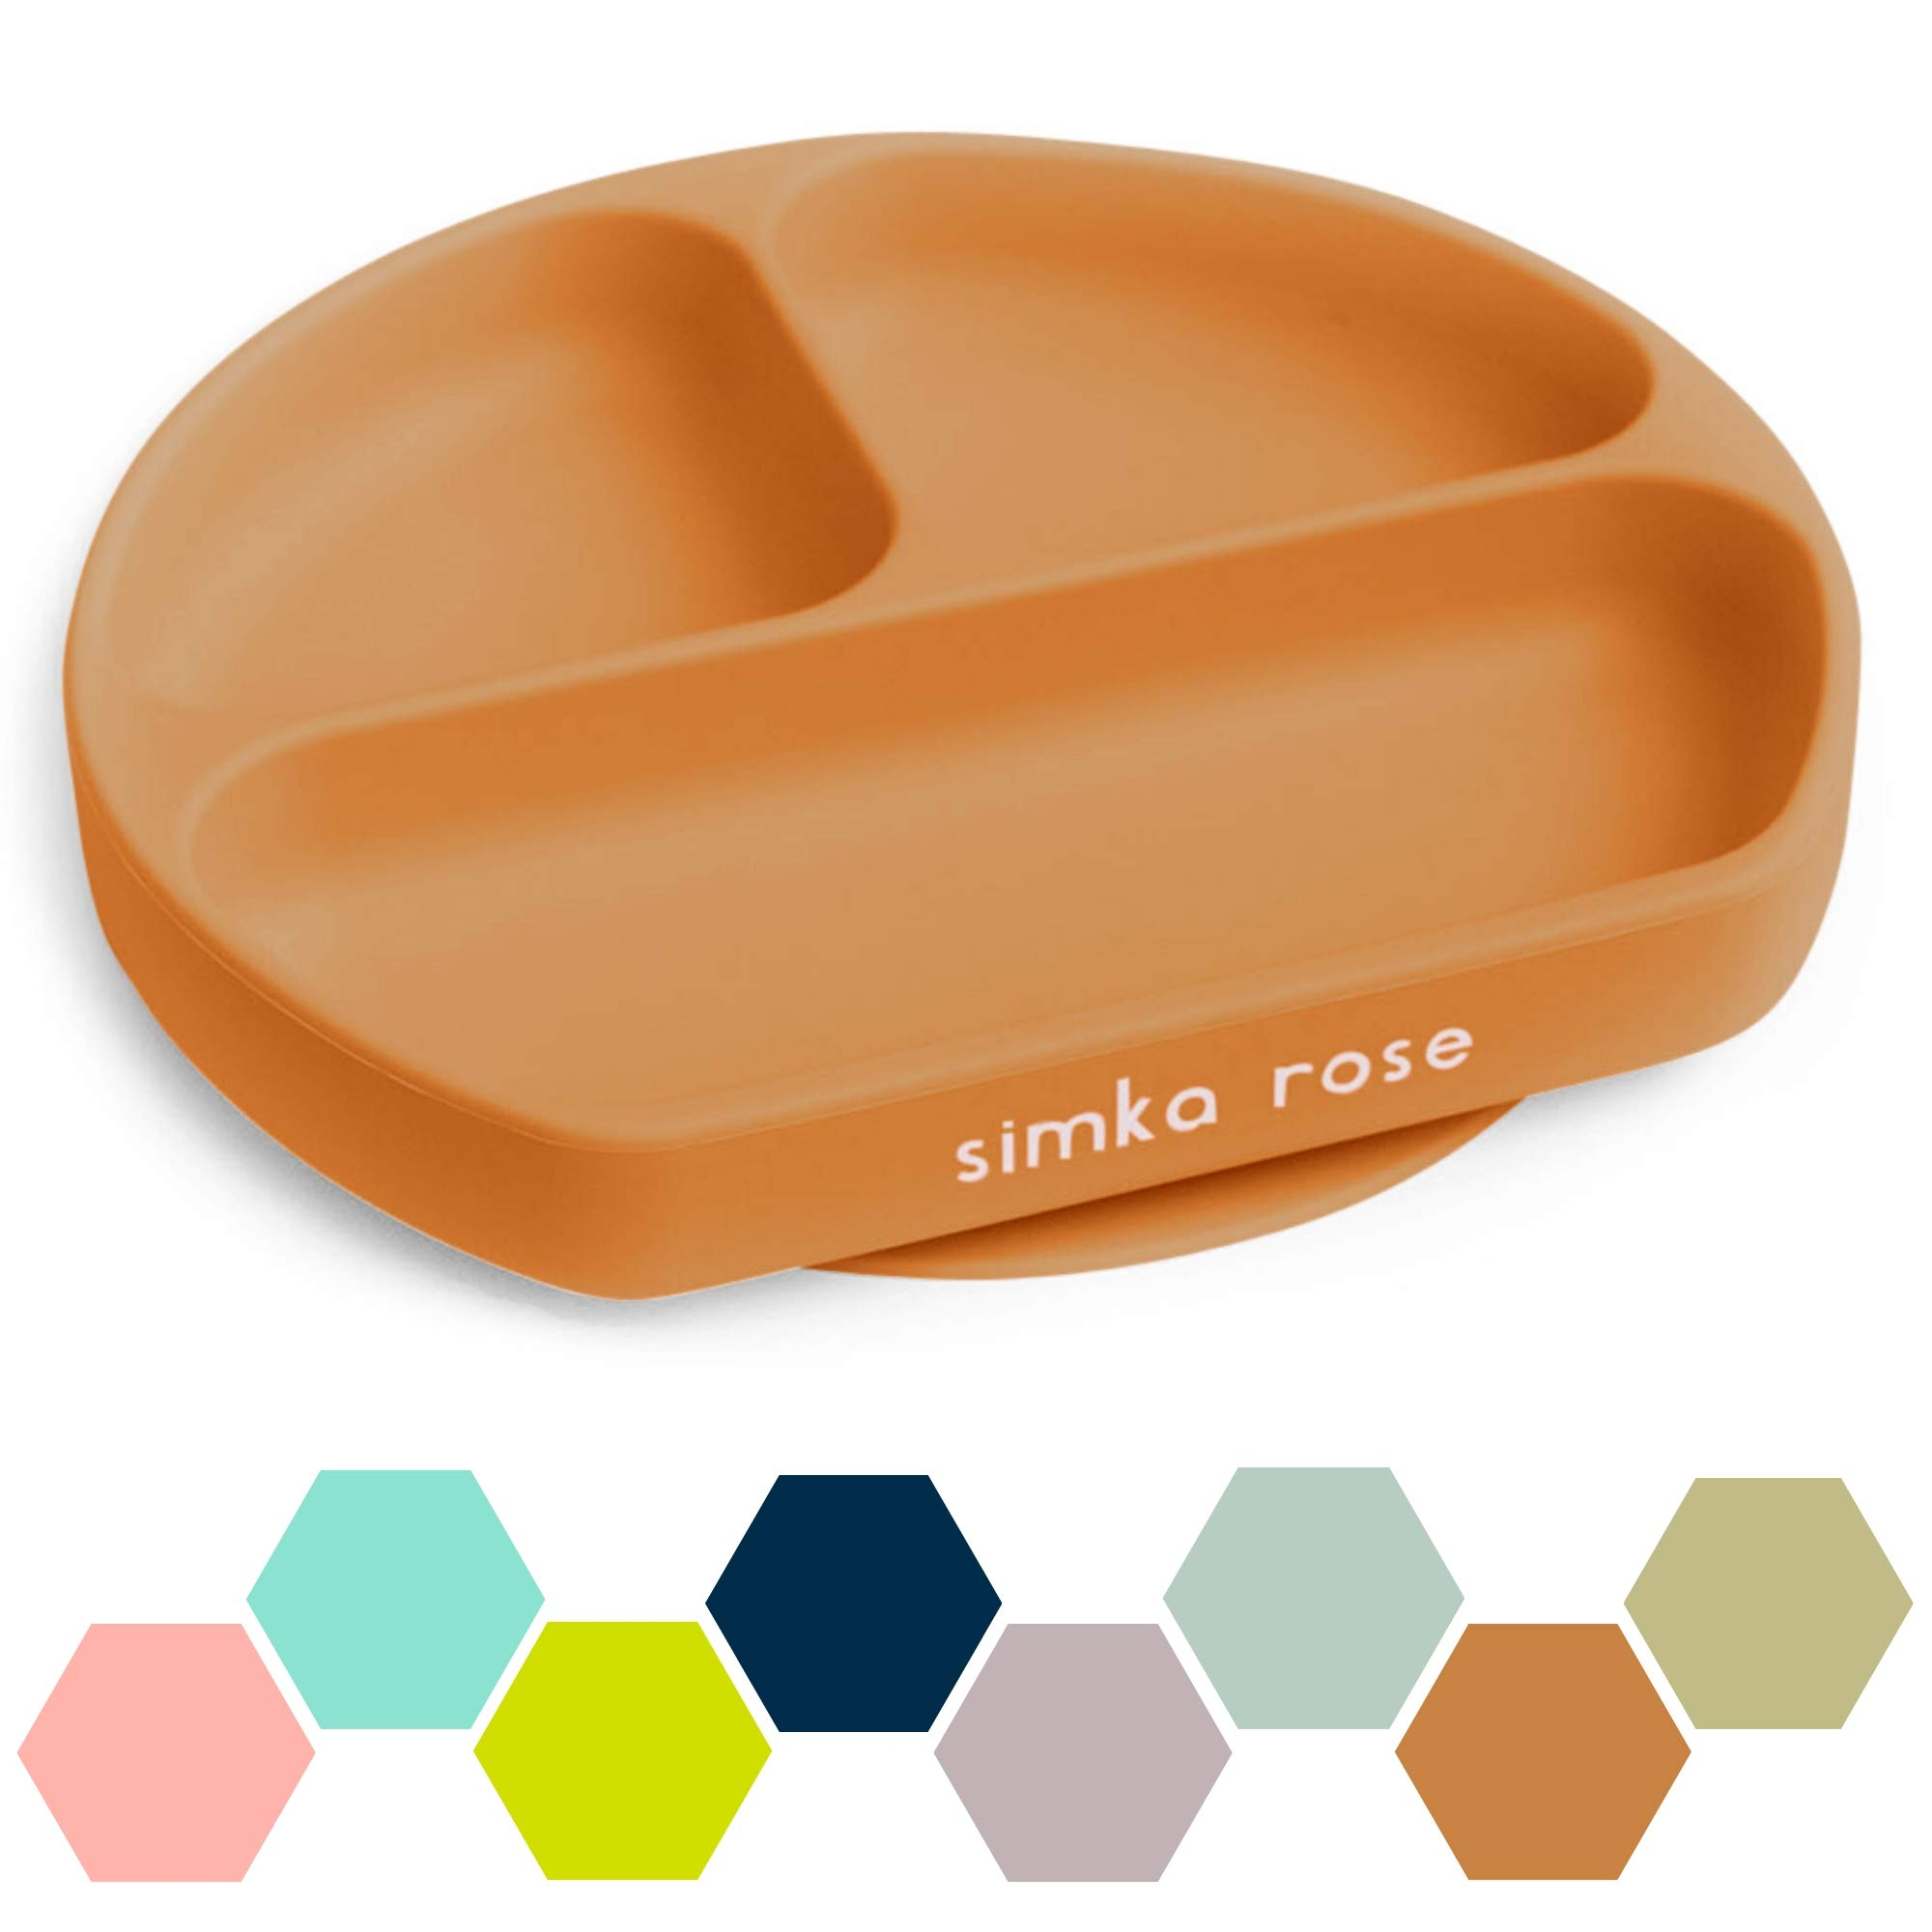 Simka Rose Suction Plate for Baby and Toddler - Divided Silicone Plate - BPA Free - Dishwasher and Microwave Safe - Premium Baby Shower Gift (Rust)